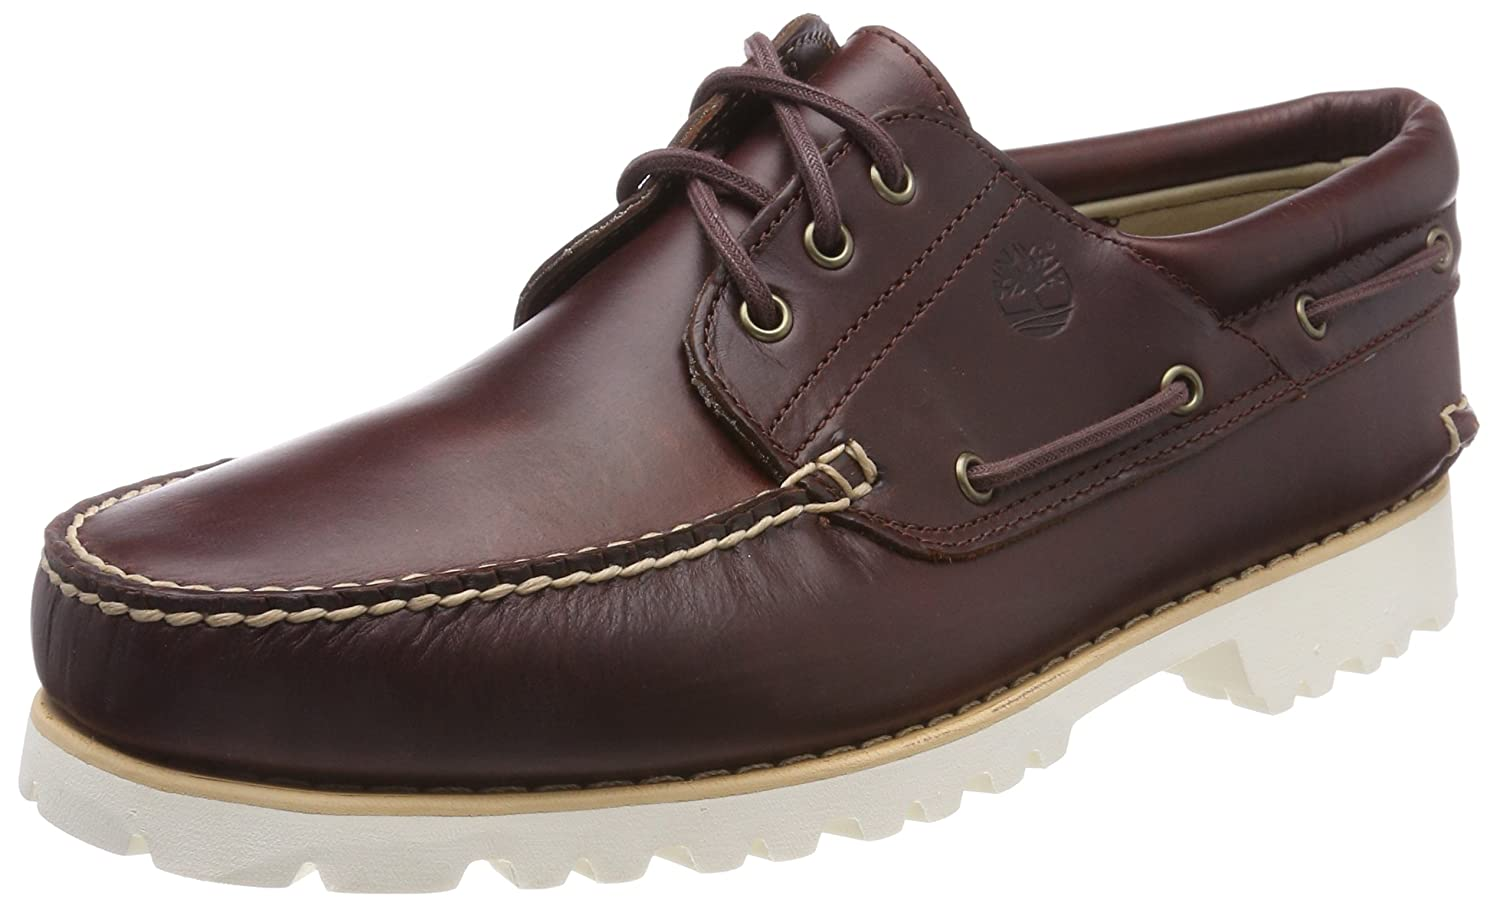 2c6090073ea Timberland Men's Chilmark 3 Eye Hands Leather Boat Shoes, Brown